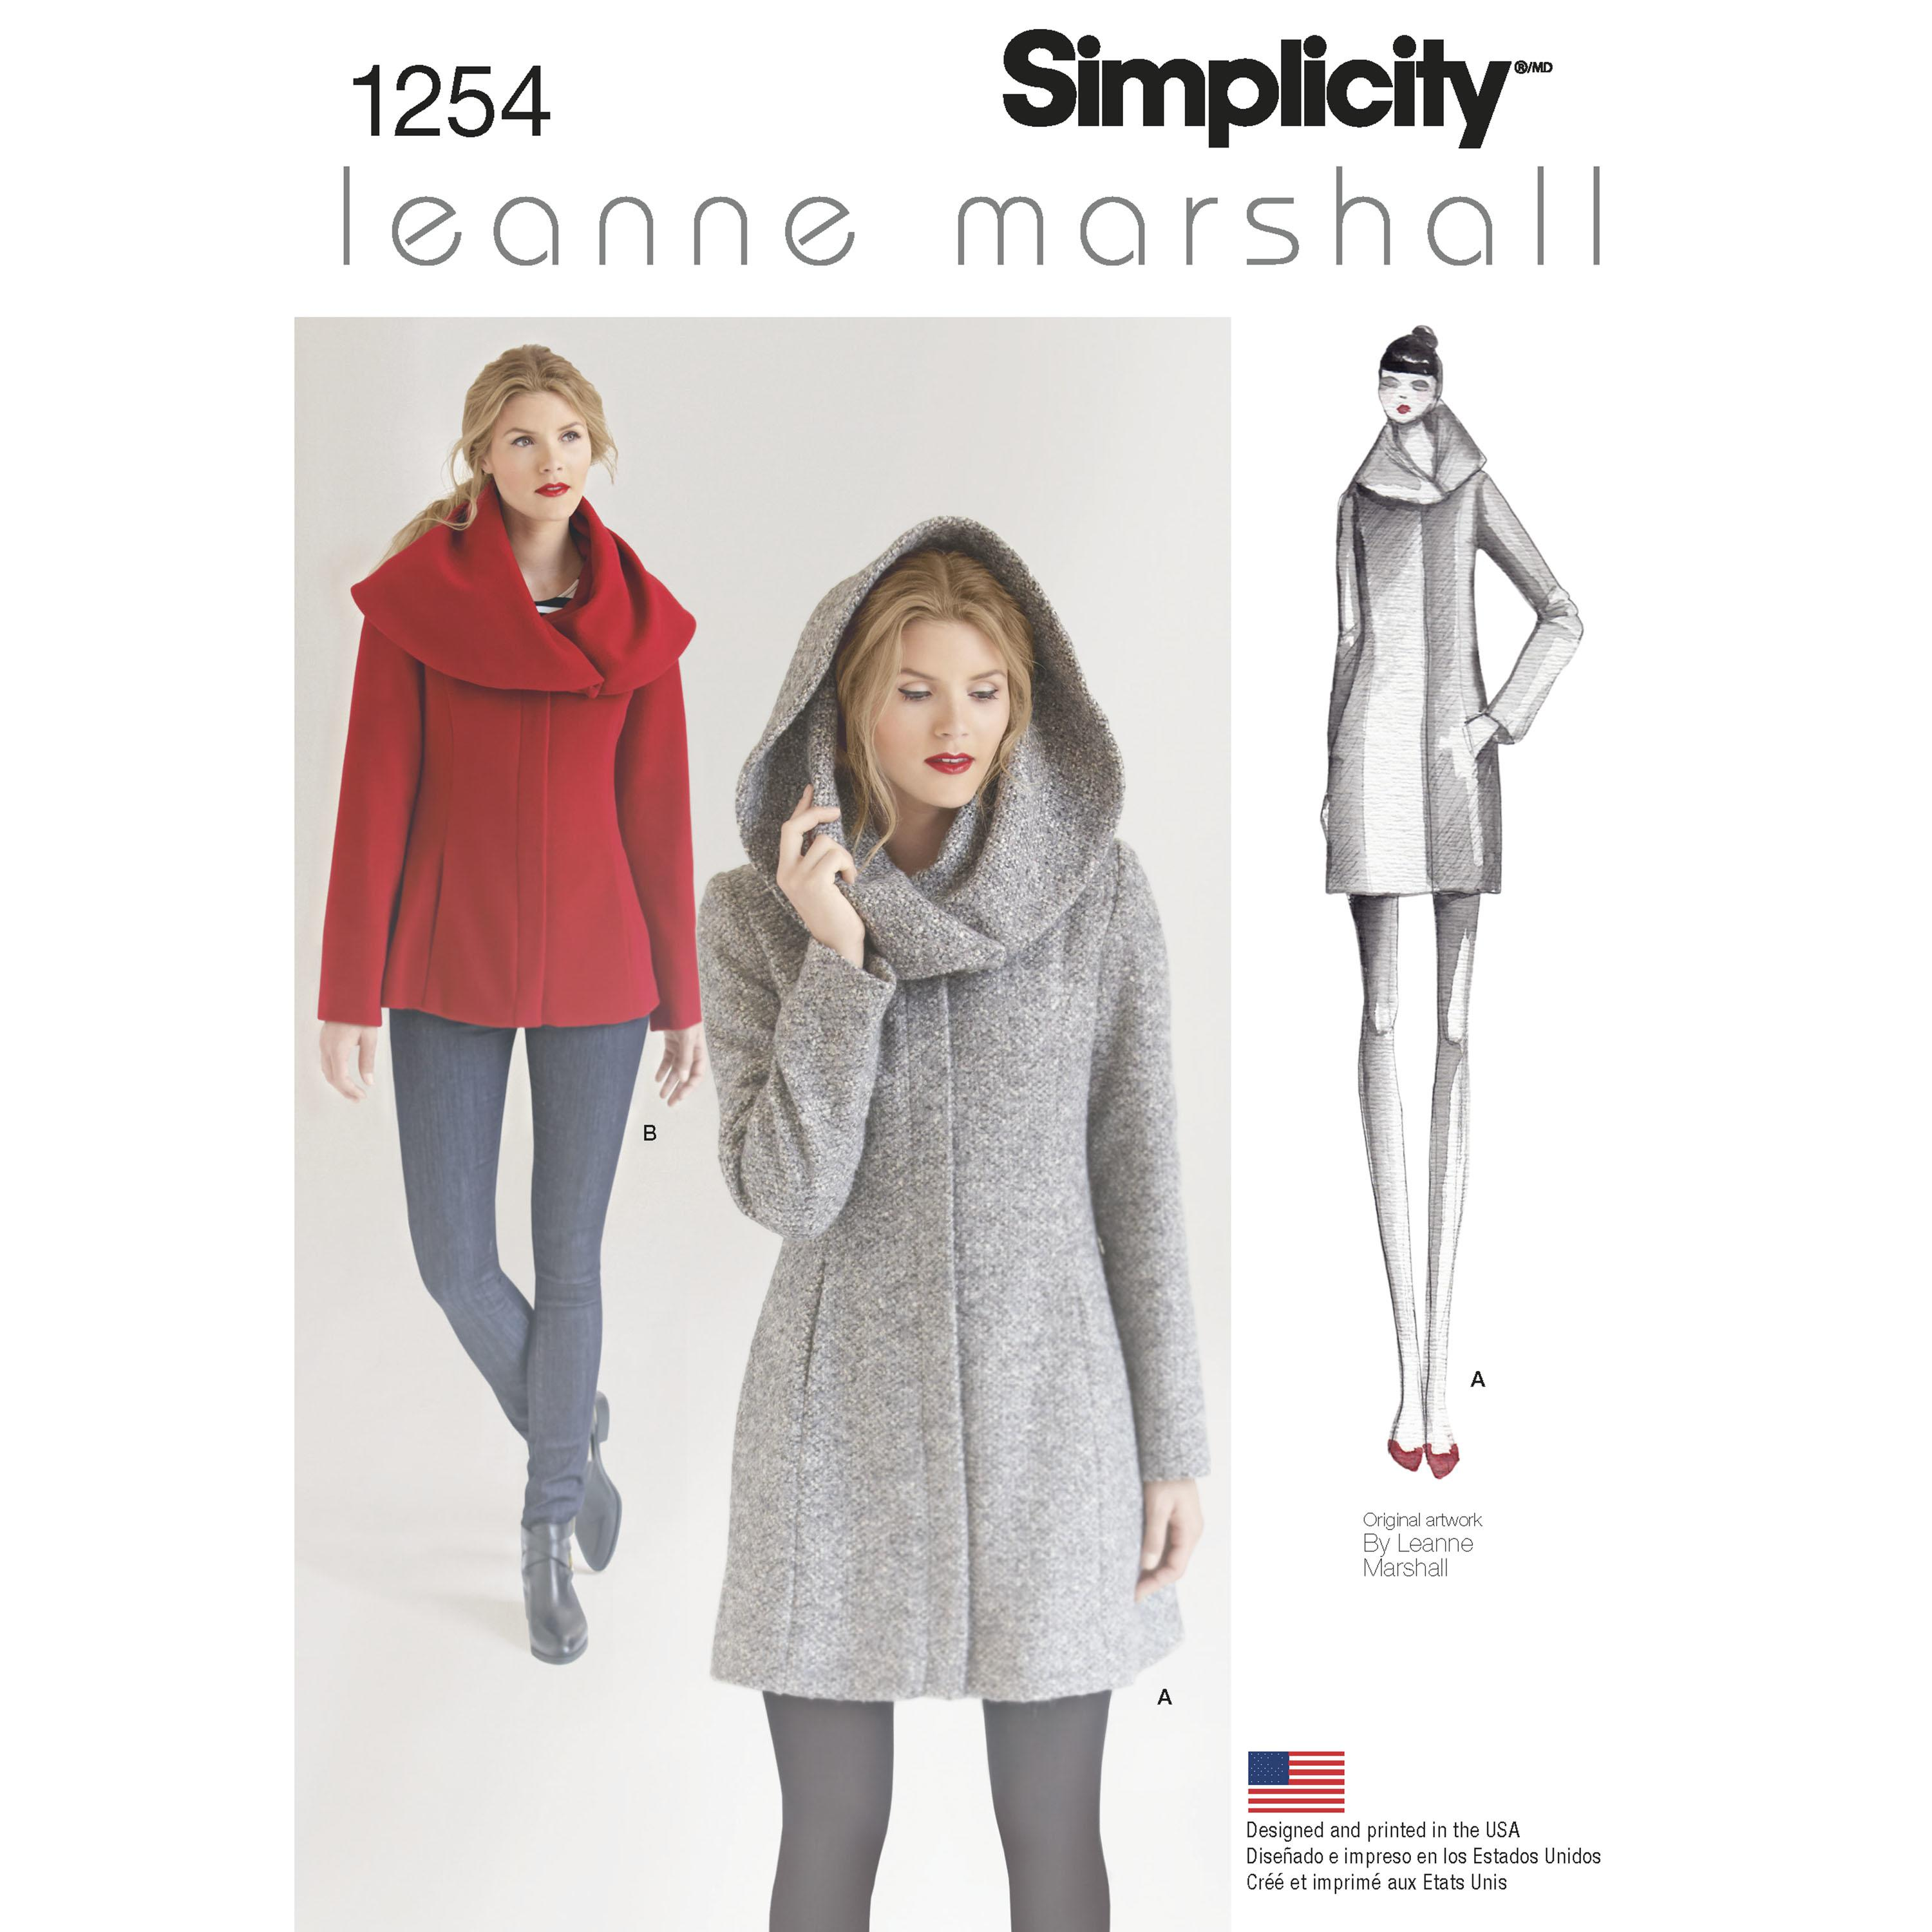 Simplicity S1254 Women's Leanne Marshall Easy Lined Coat or Jacket